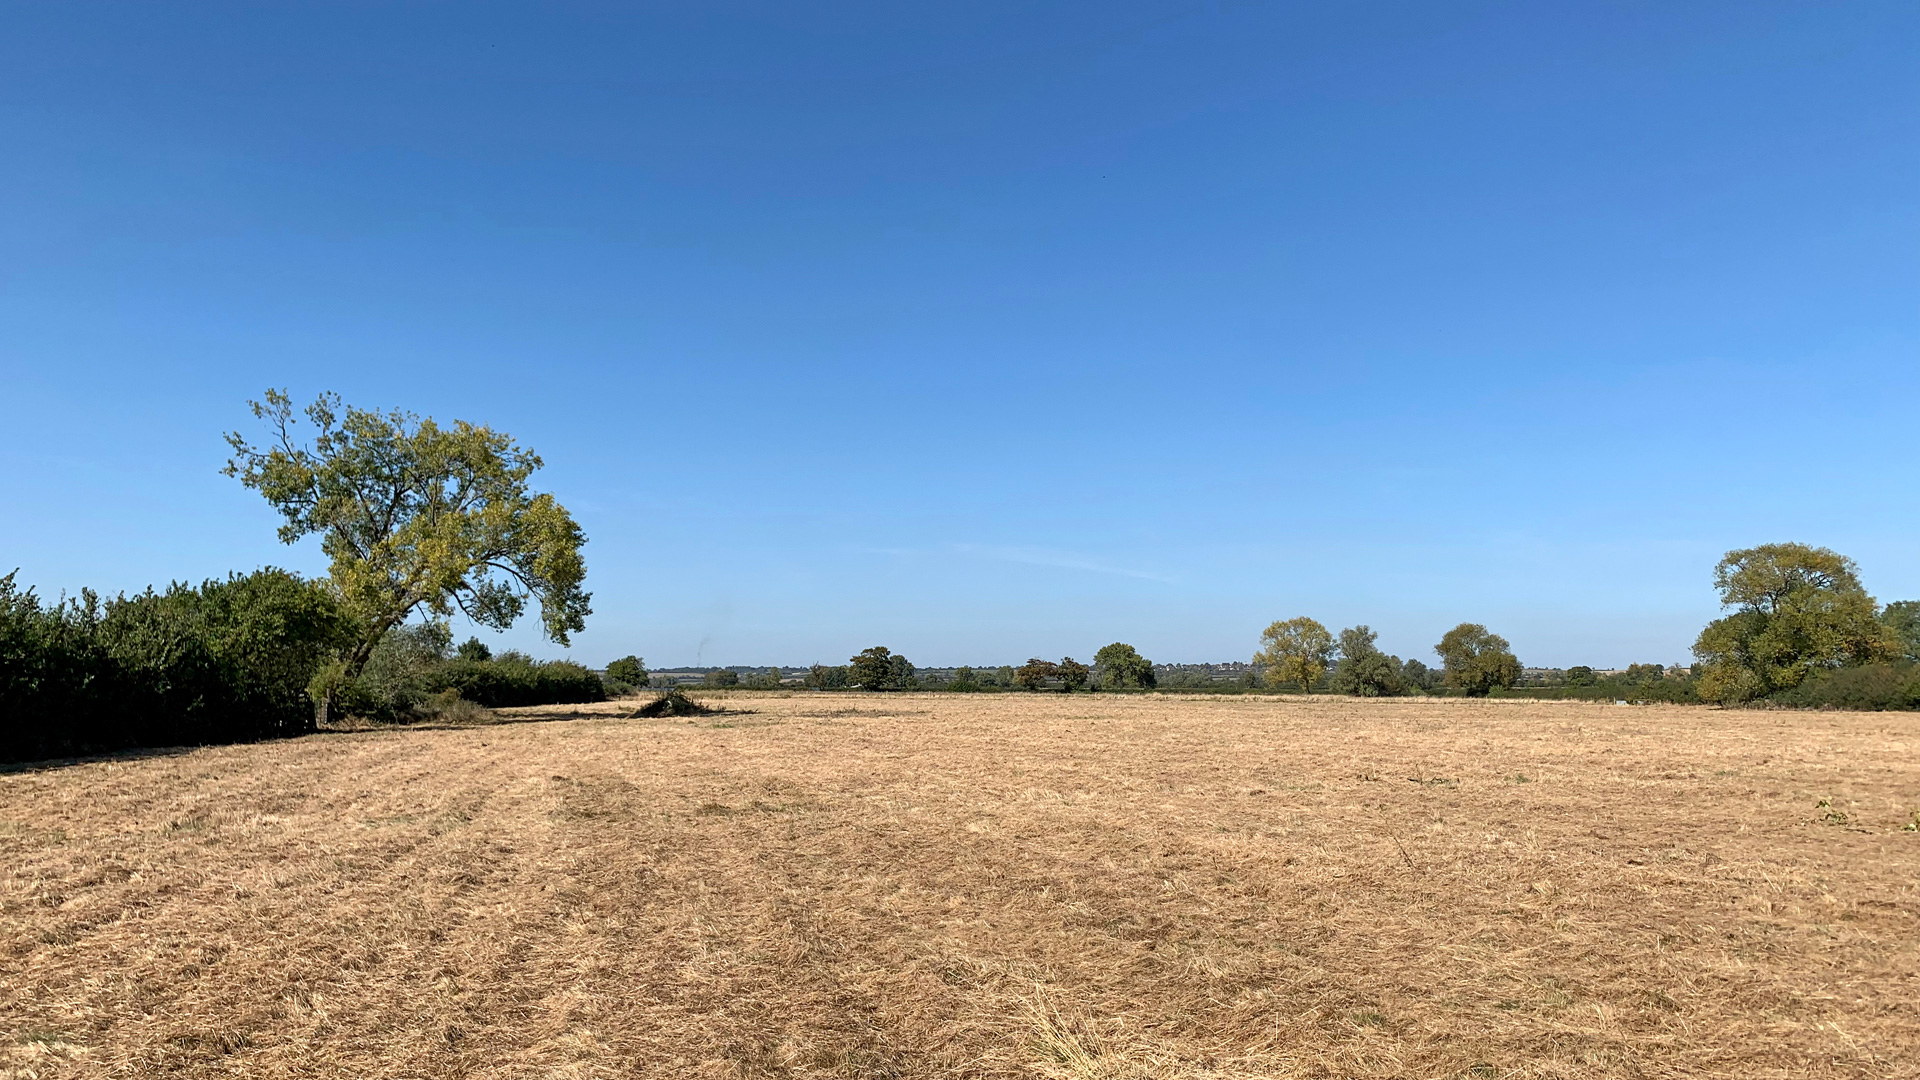 Land for sale at Draytonmead Farm